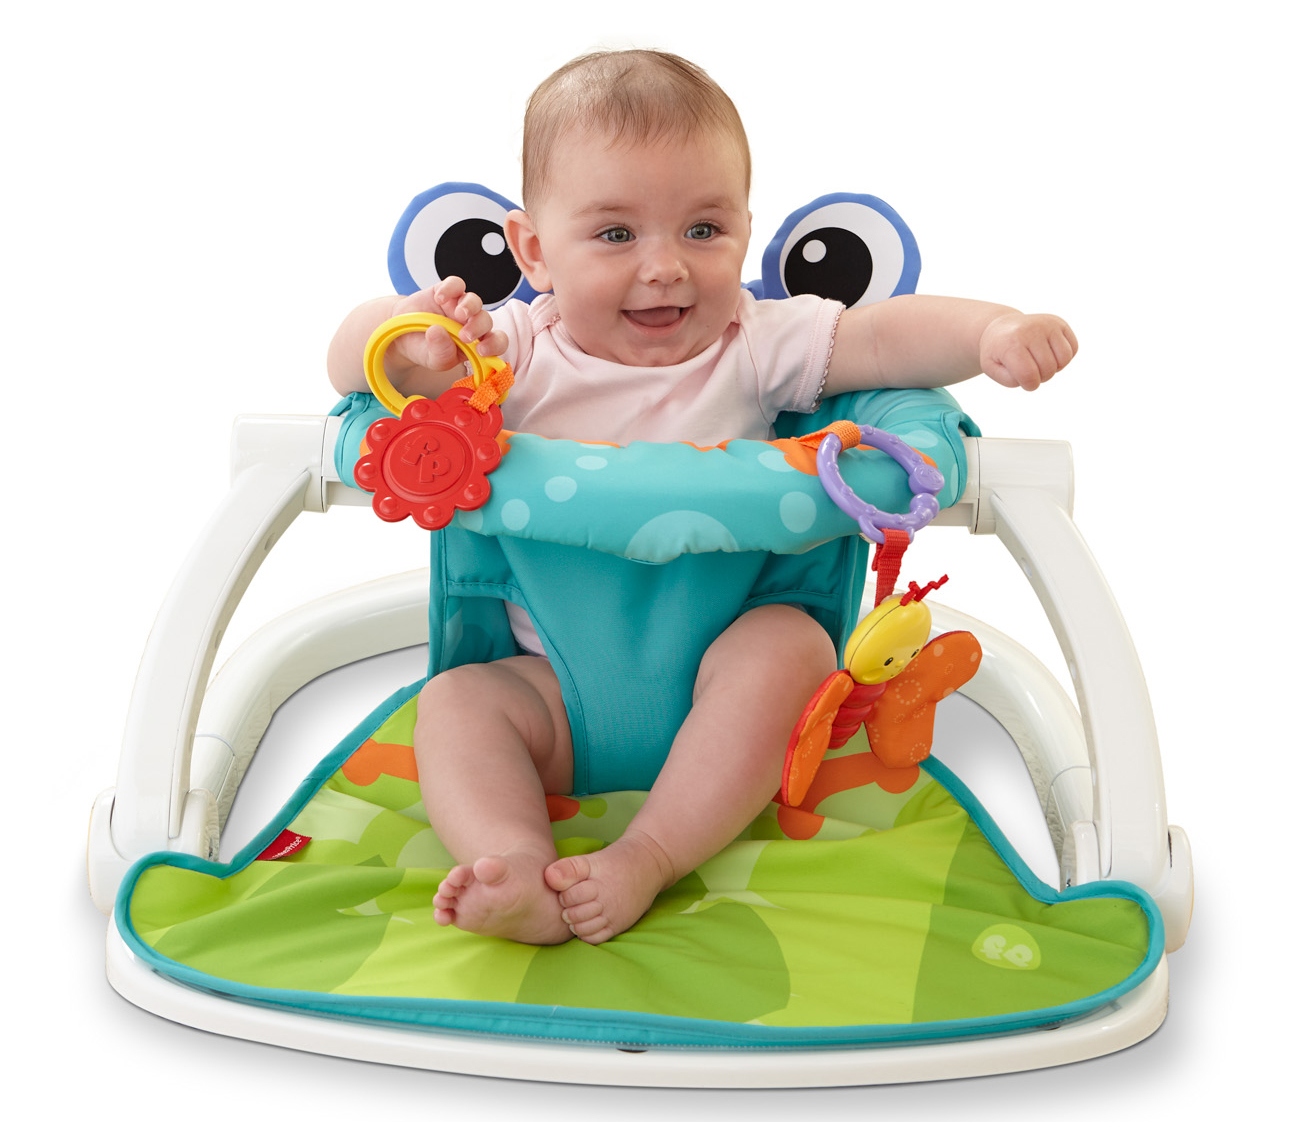 Baby Floor Toys : Mattel inc on walmart seller reviews marketplace rating